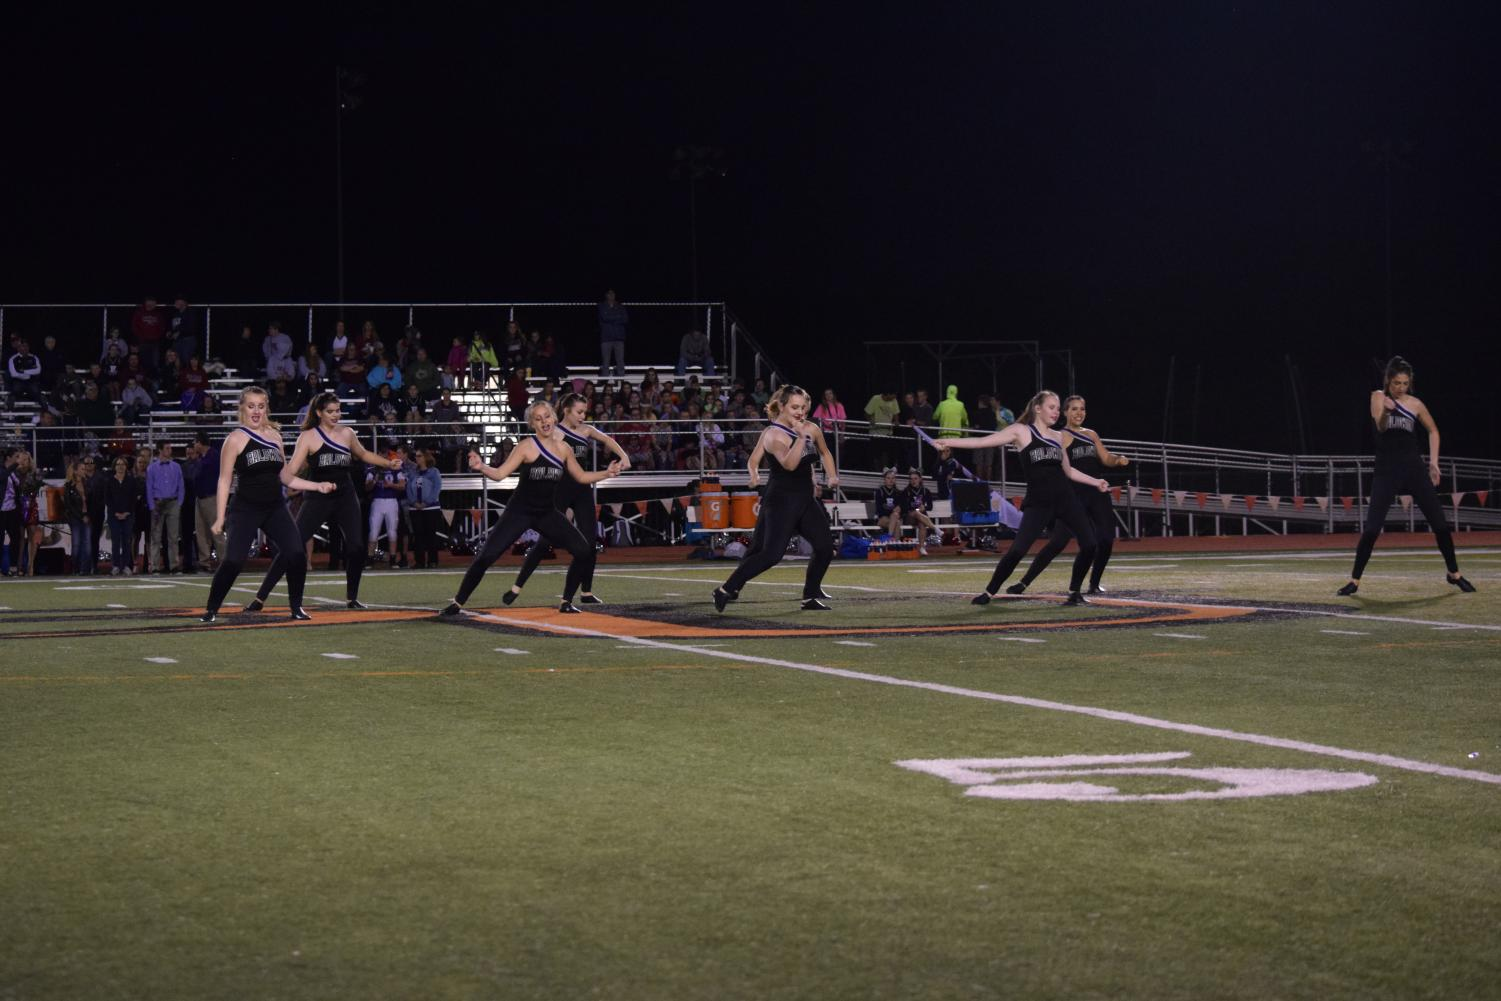 The dance team performed during halftime at the recent Homecoming game.